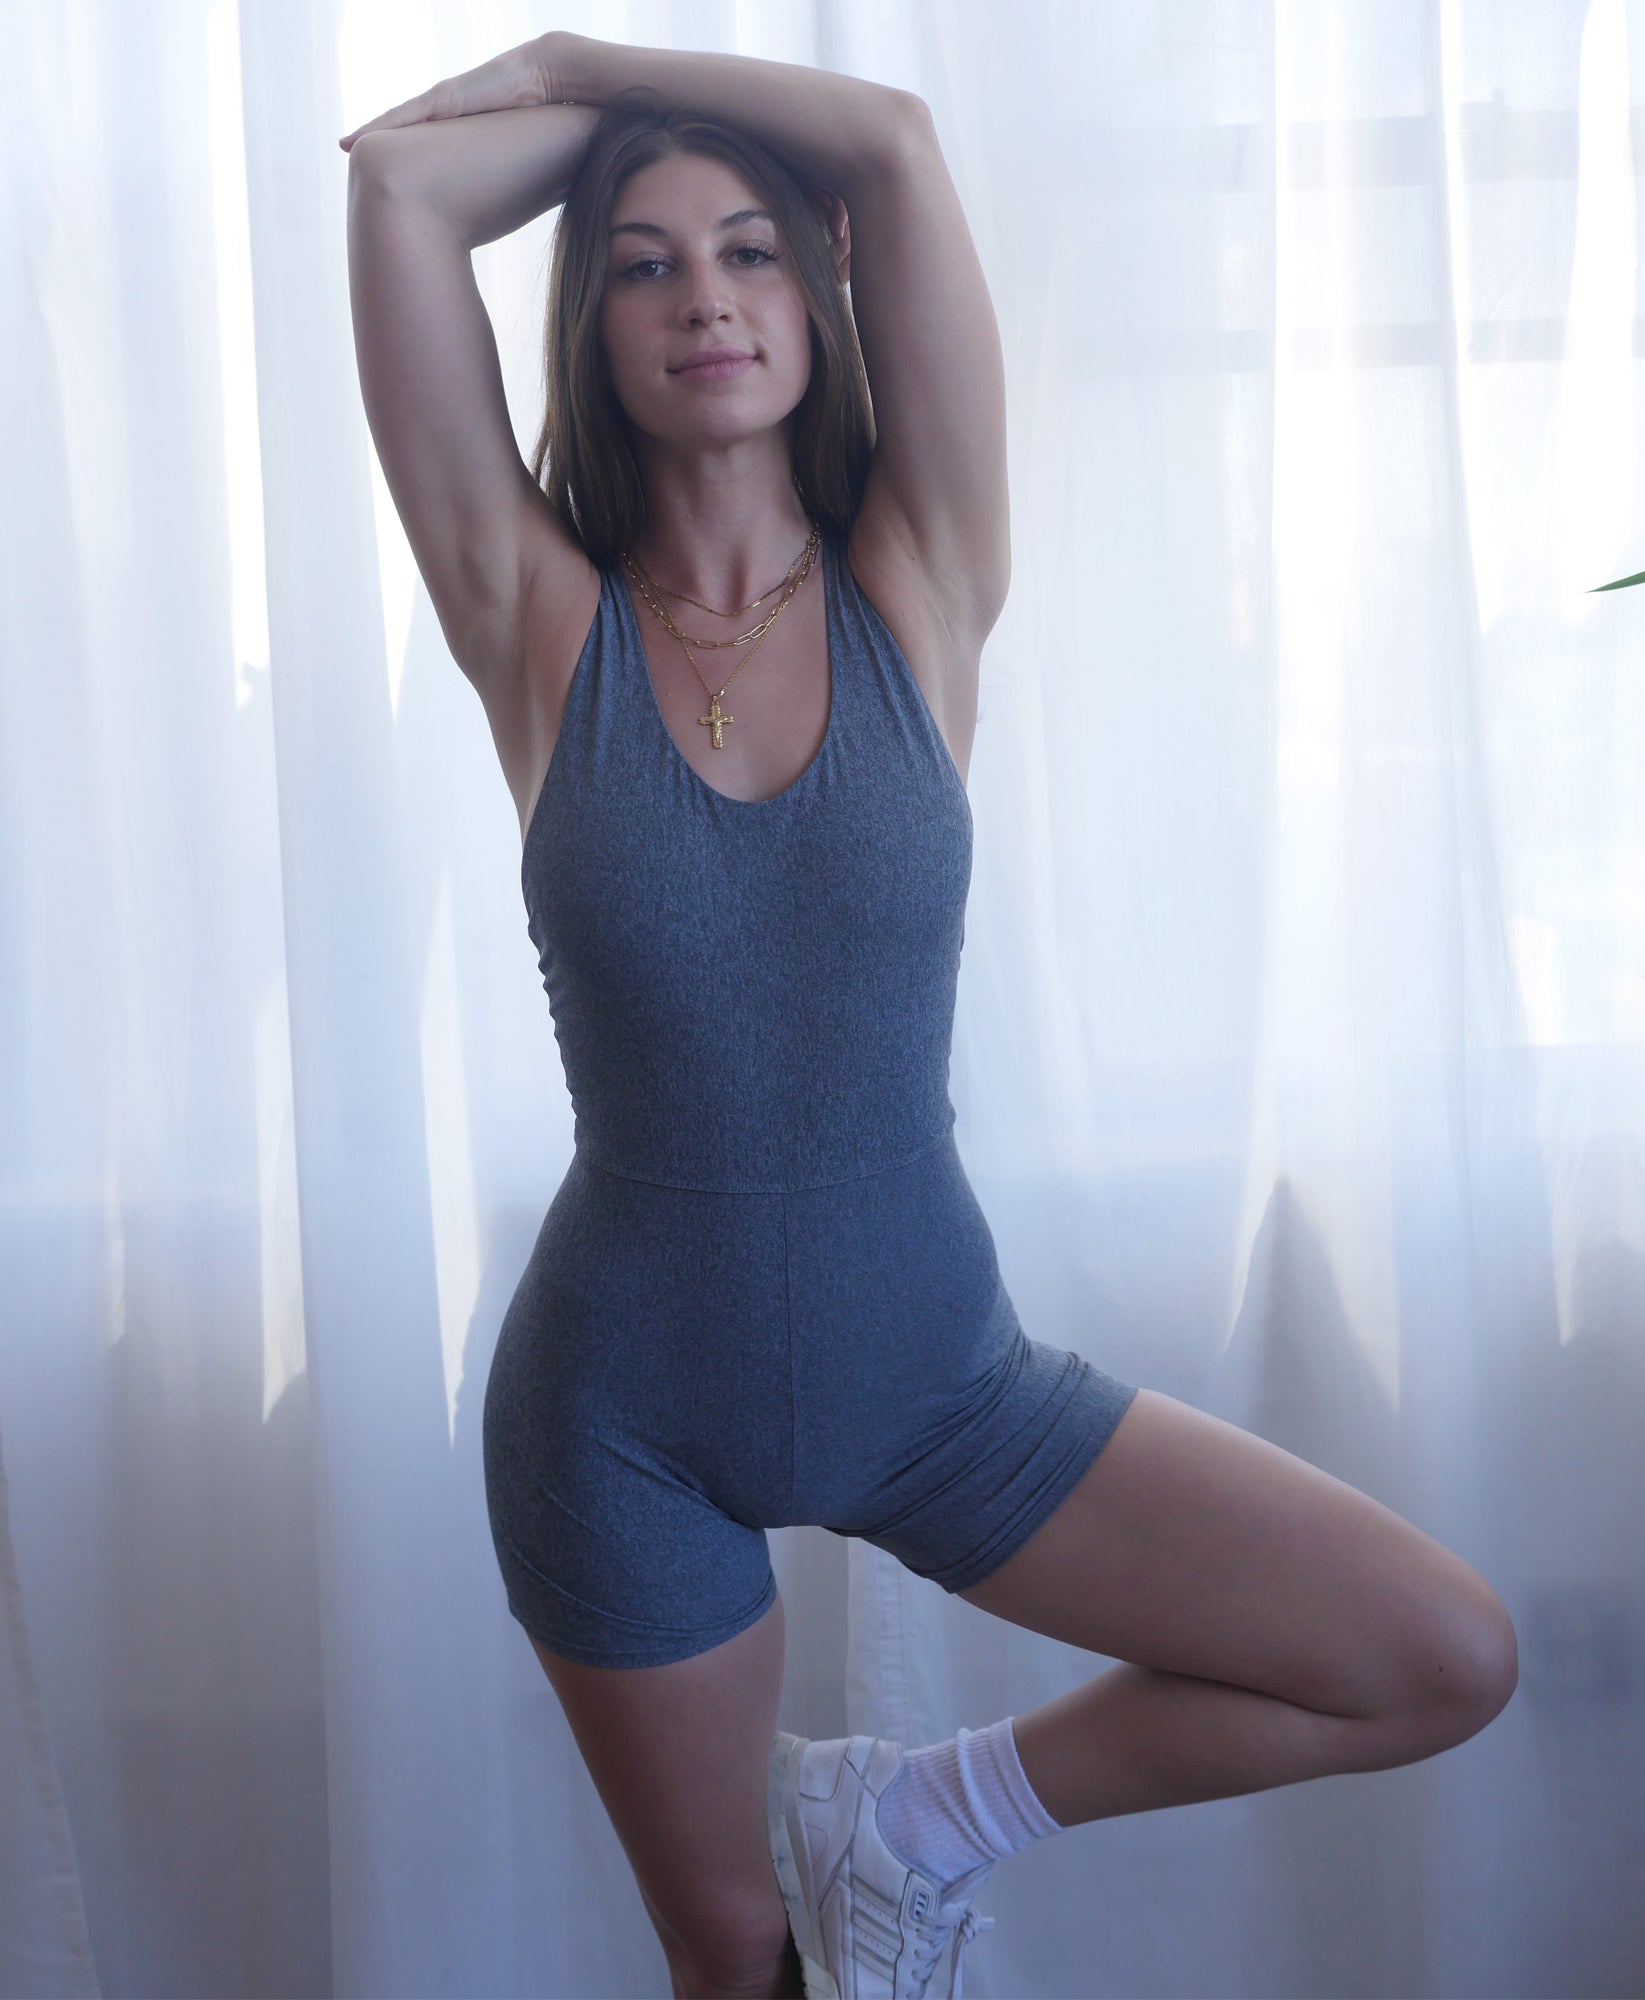 Wear One's At Bike Short Unitard in Heather Grey on Model Front View